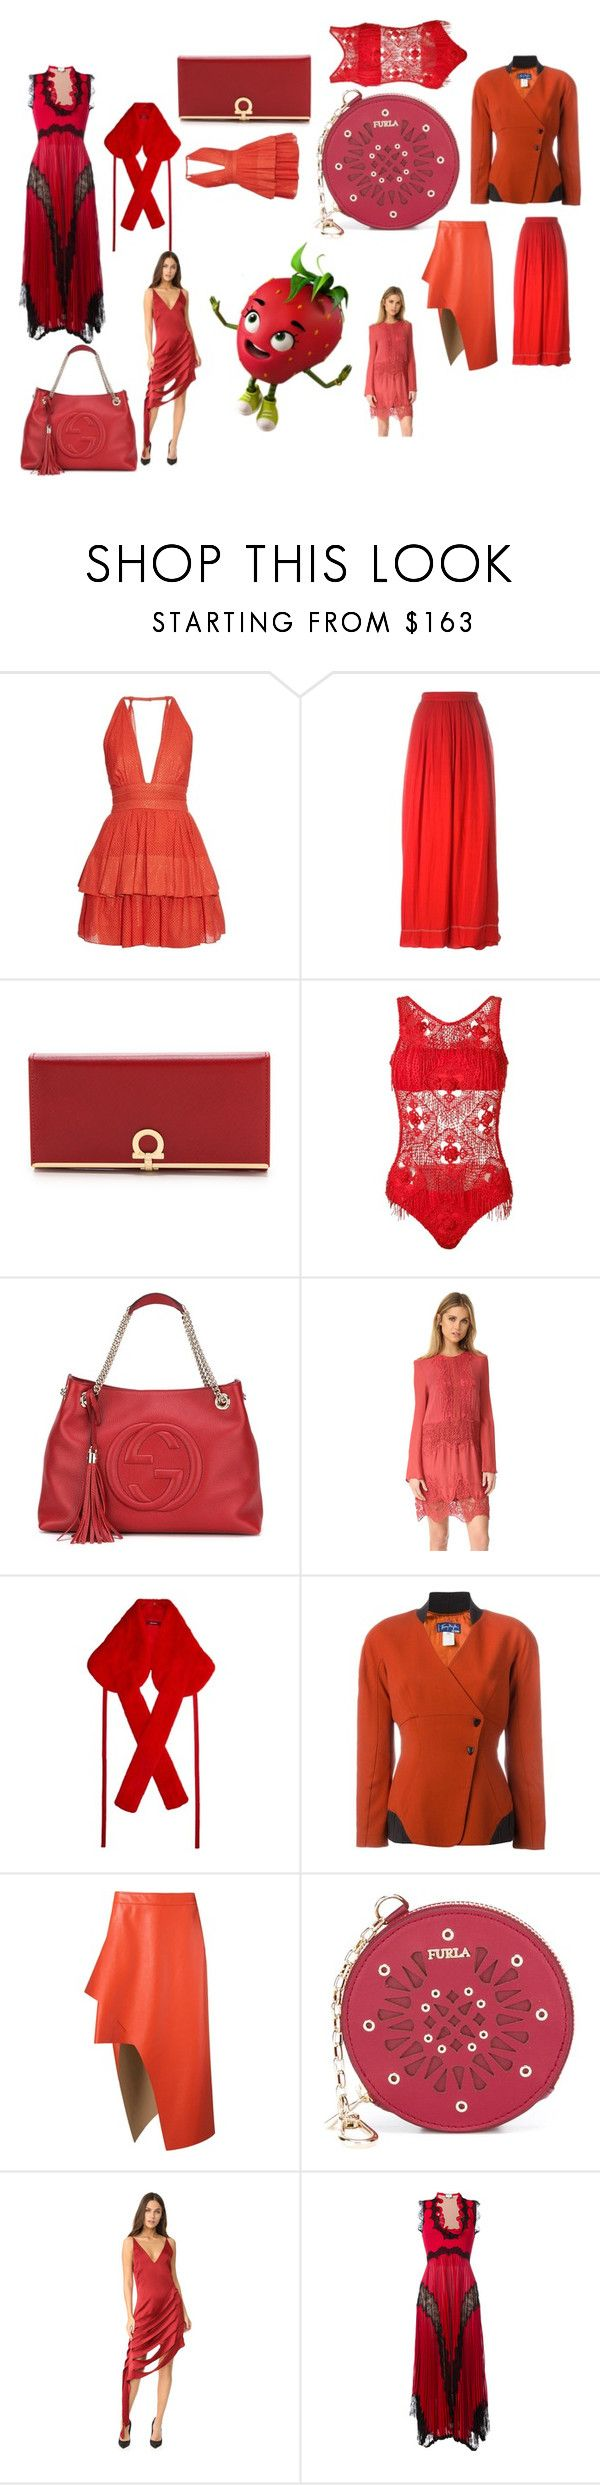 """""""old wine in red bottle¶"""" by racheal-taylor ❤ liked on Polyvore featuring Sophie Theallet, Isabel Marant, Salvatore Ferragamo, Amir Slama, Gucci, The Jetset Diaries, Sies Marjan, Thierry Mugler, Uma 